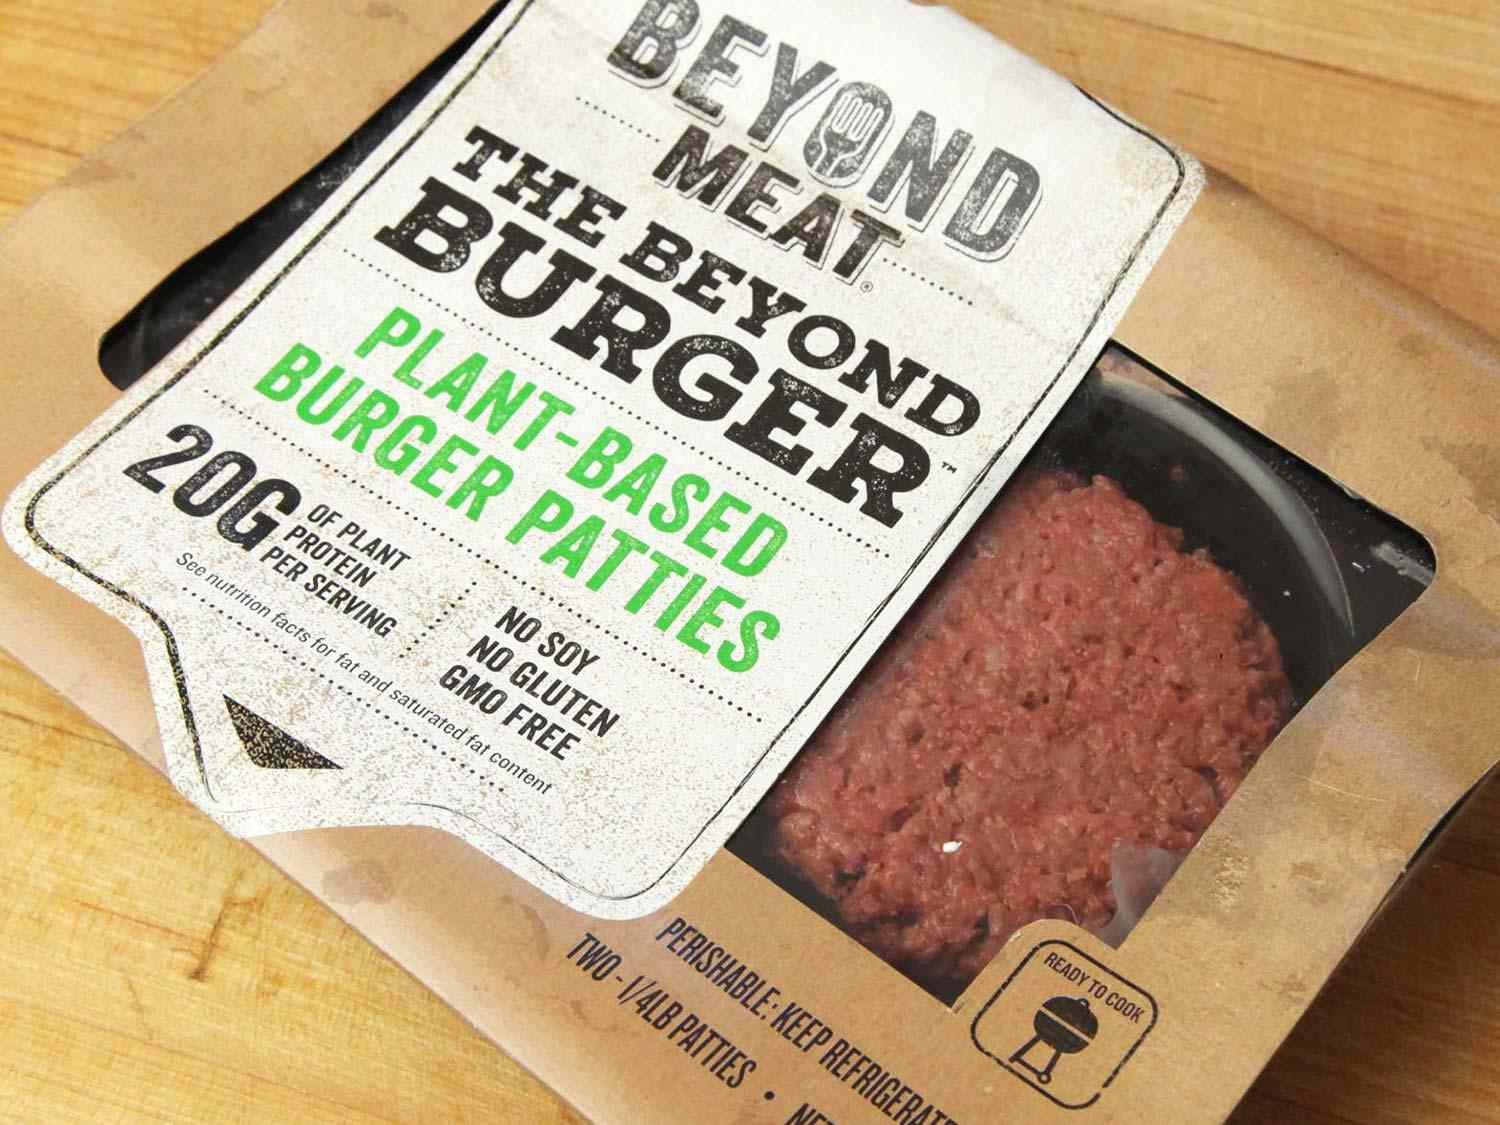 A package of Beyond Meat plant-based burger patties.